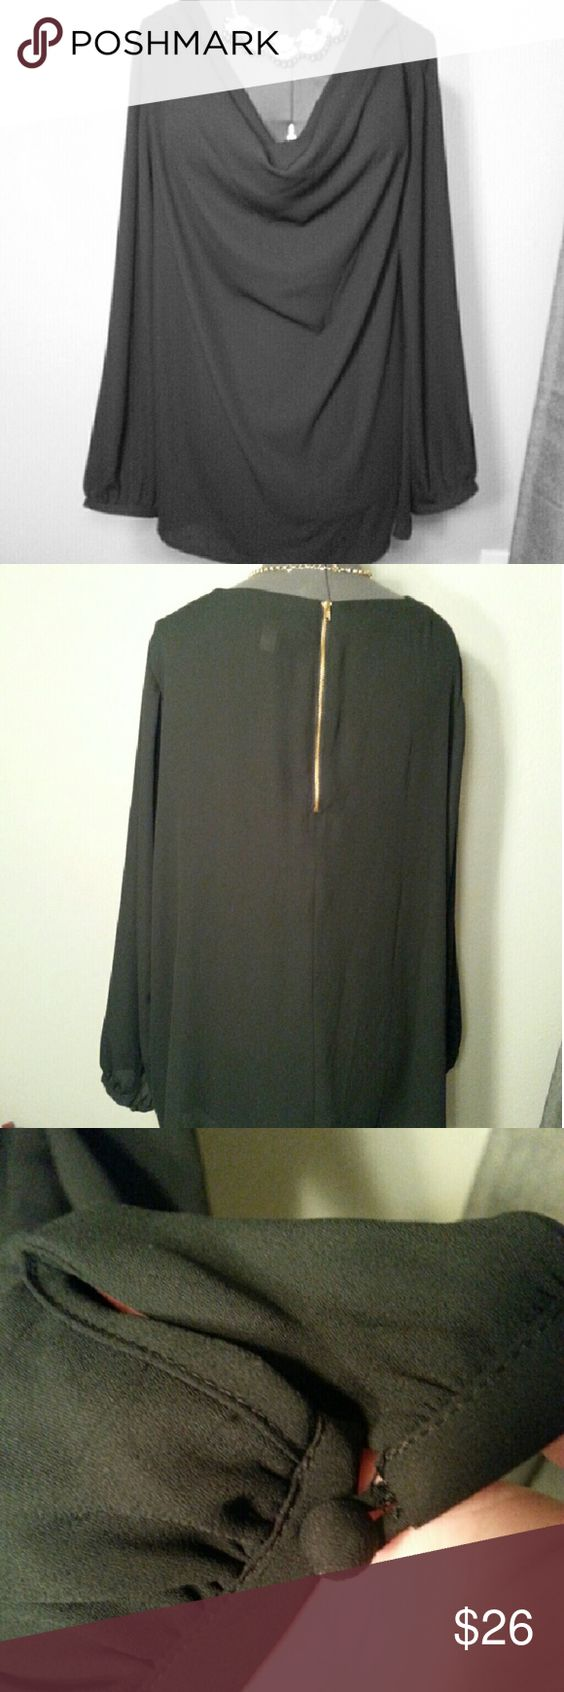 Lane Bryant Dress Top sz 26/28 LANE BRYANT -  a classic top! Black, simple, polyester dressy top.   Sz 26/28  Smoke free home  If you have any questions please feel free to ask - I'd be happy to help you! ? Lane Bryant Tops Blouses